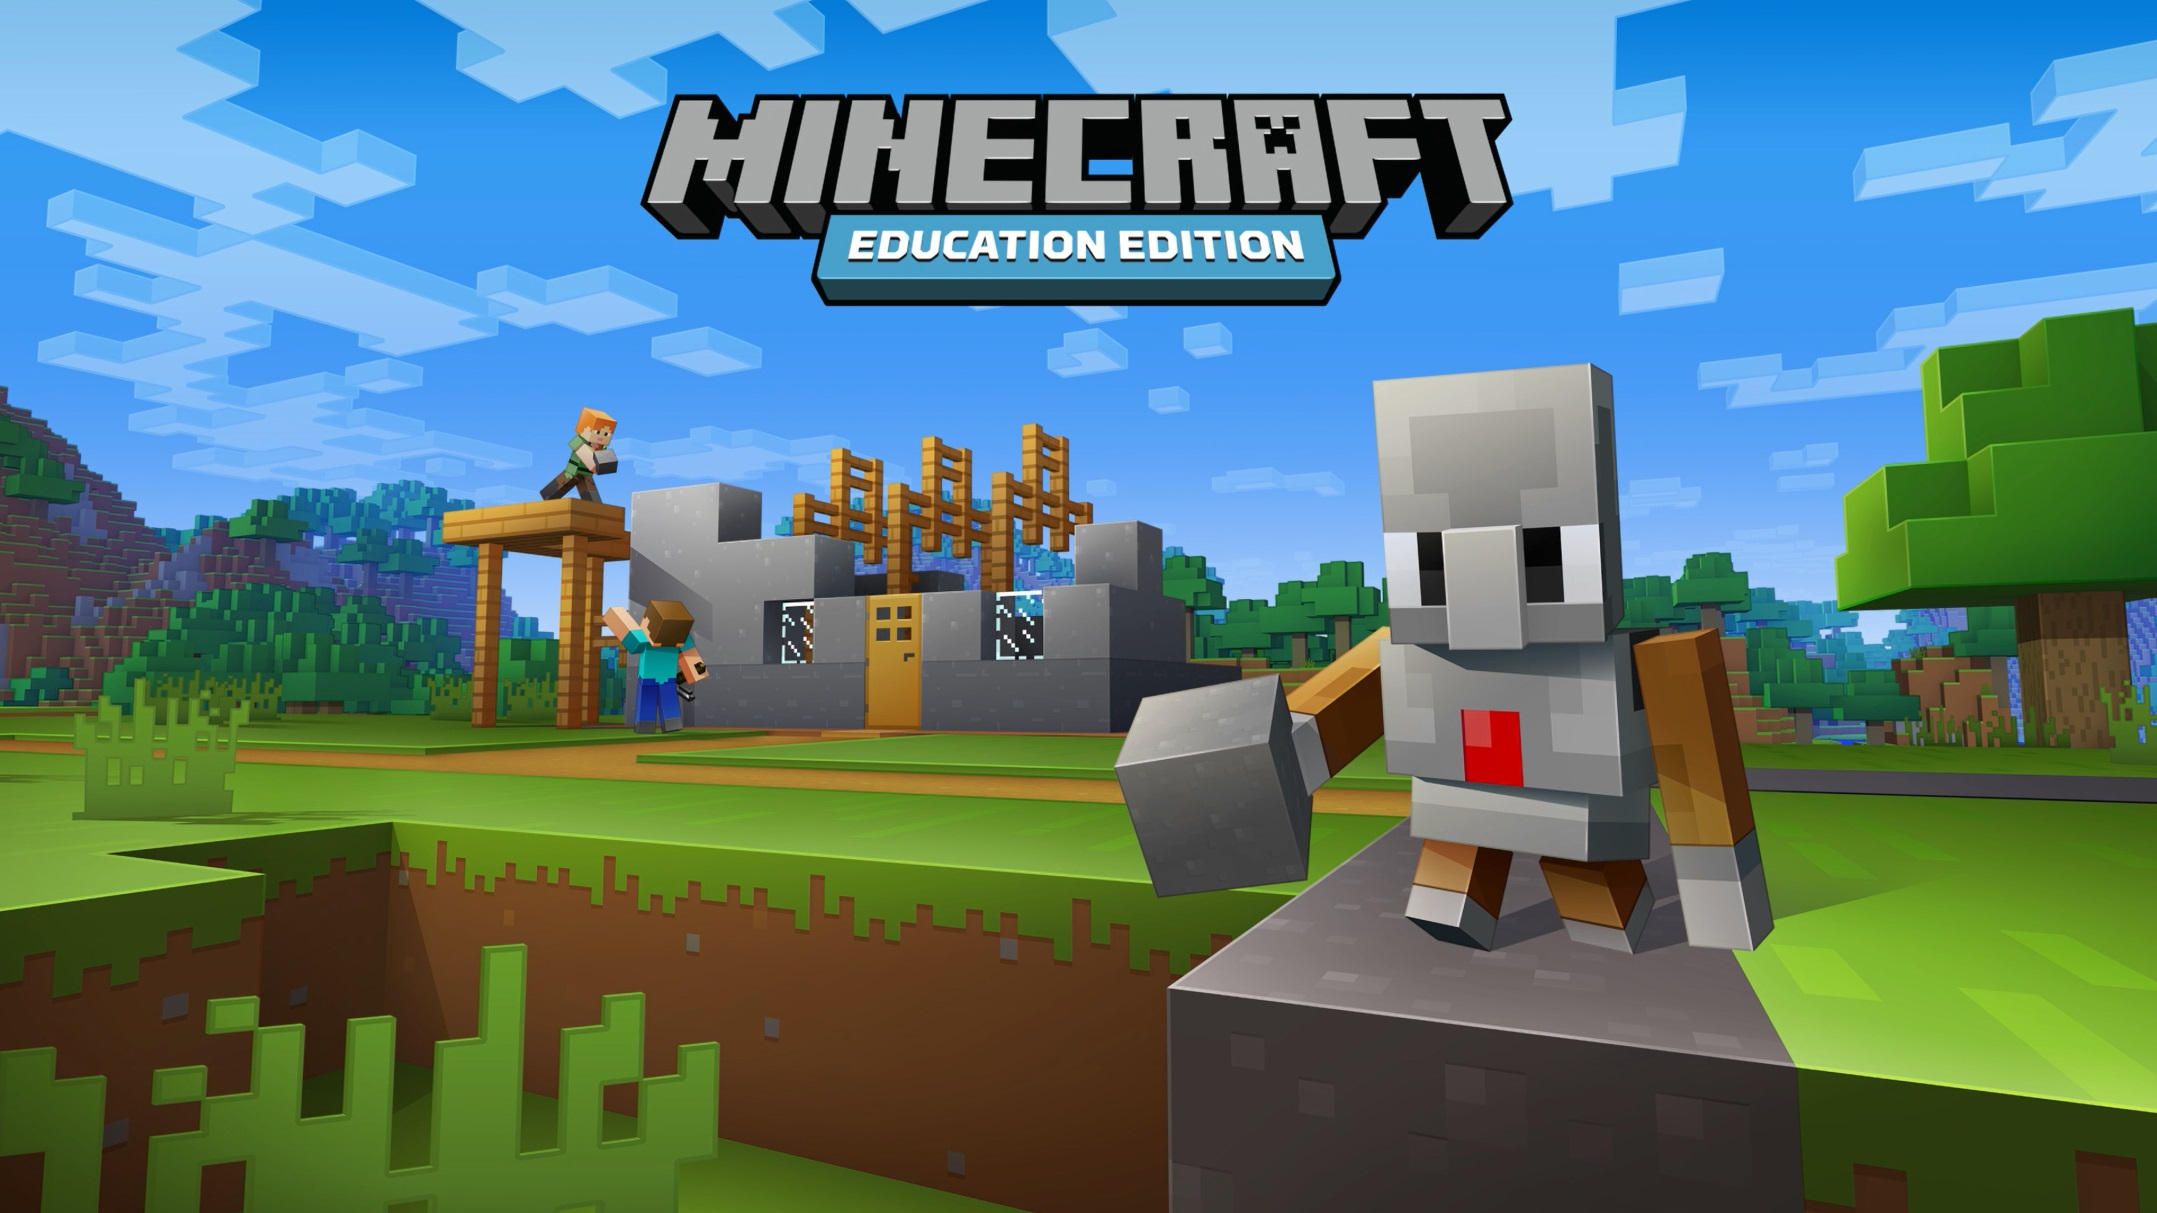 Minecraft Education Edition scene